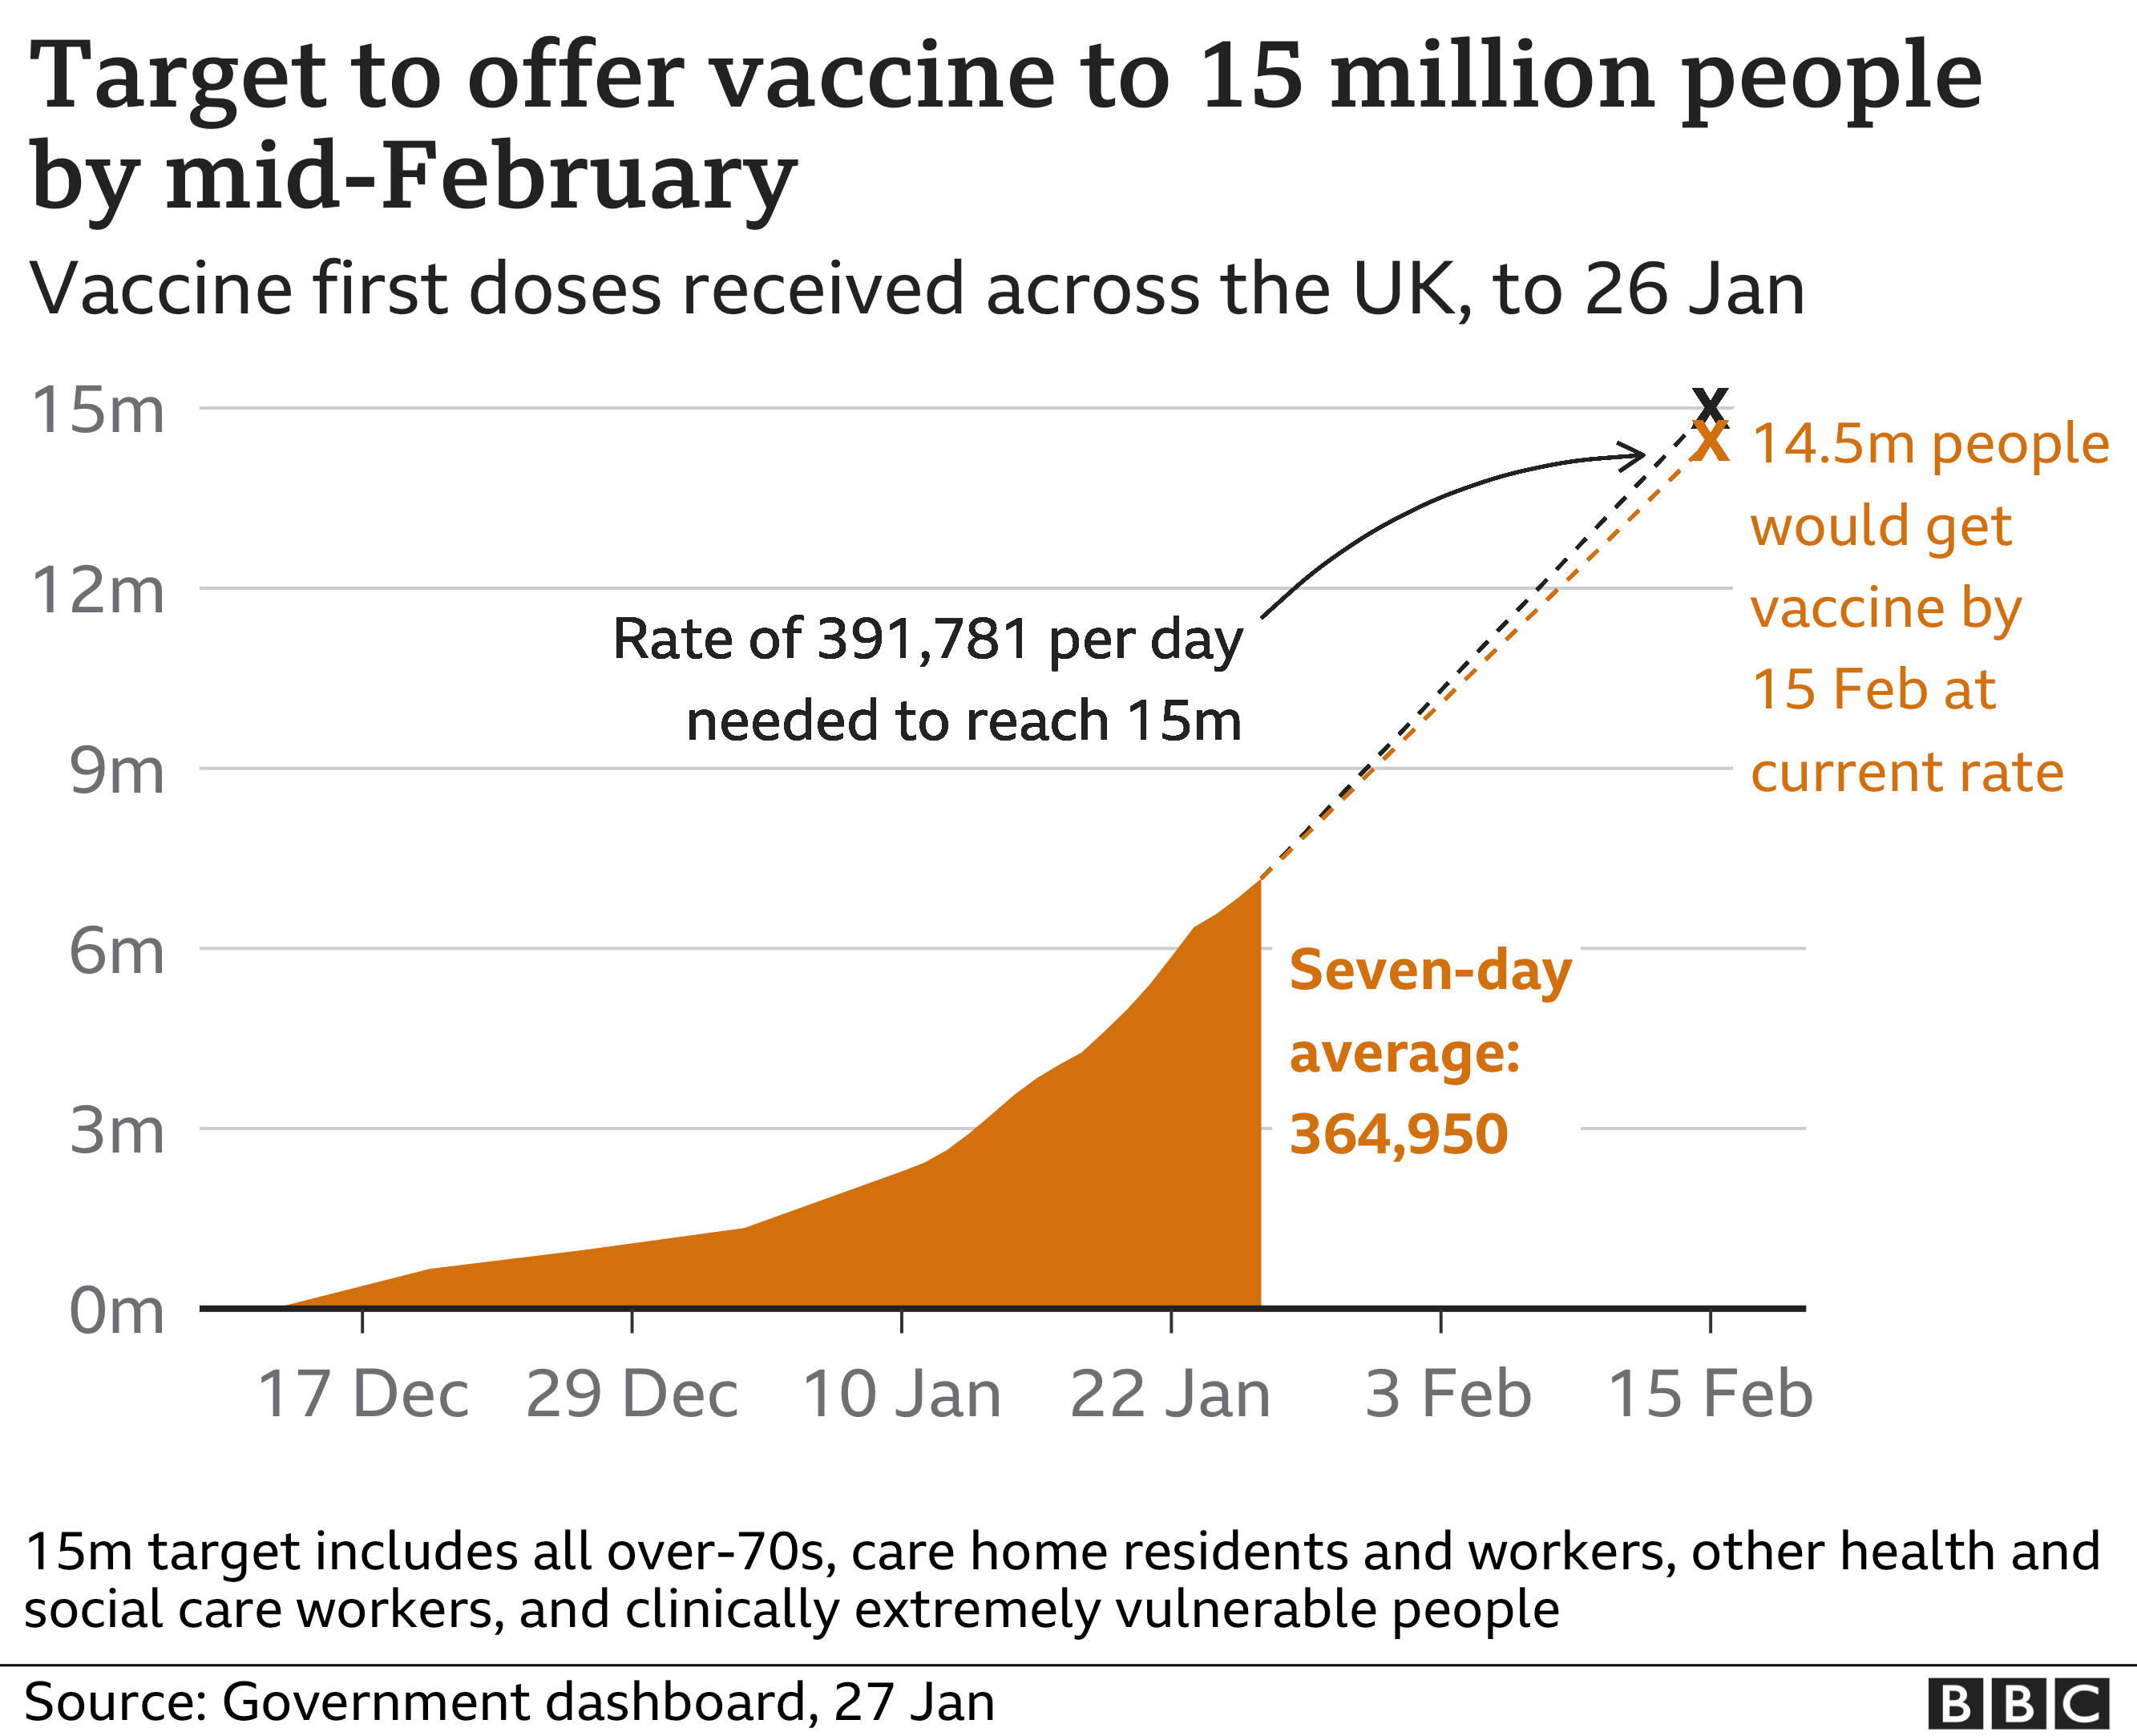 Chart showing vaccination target data